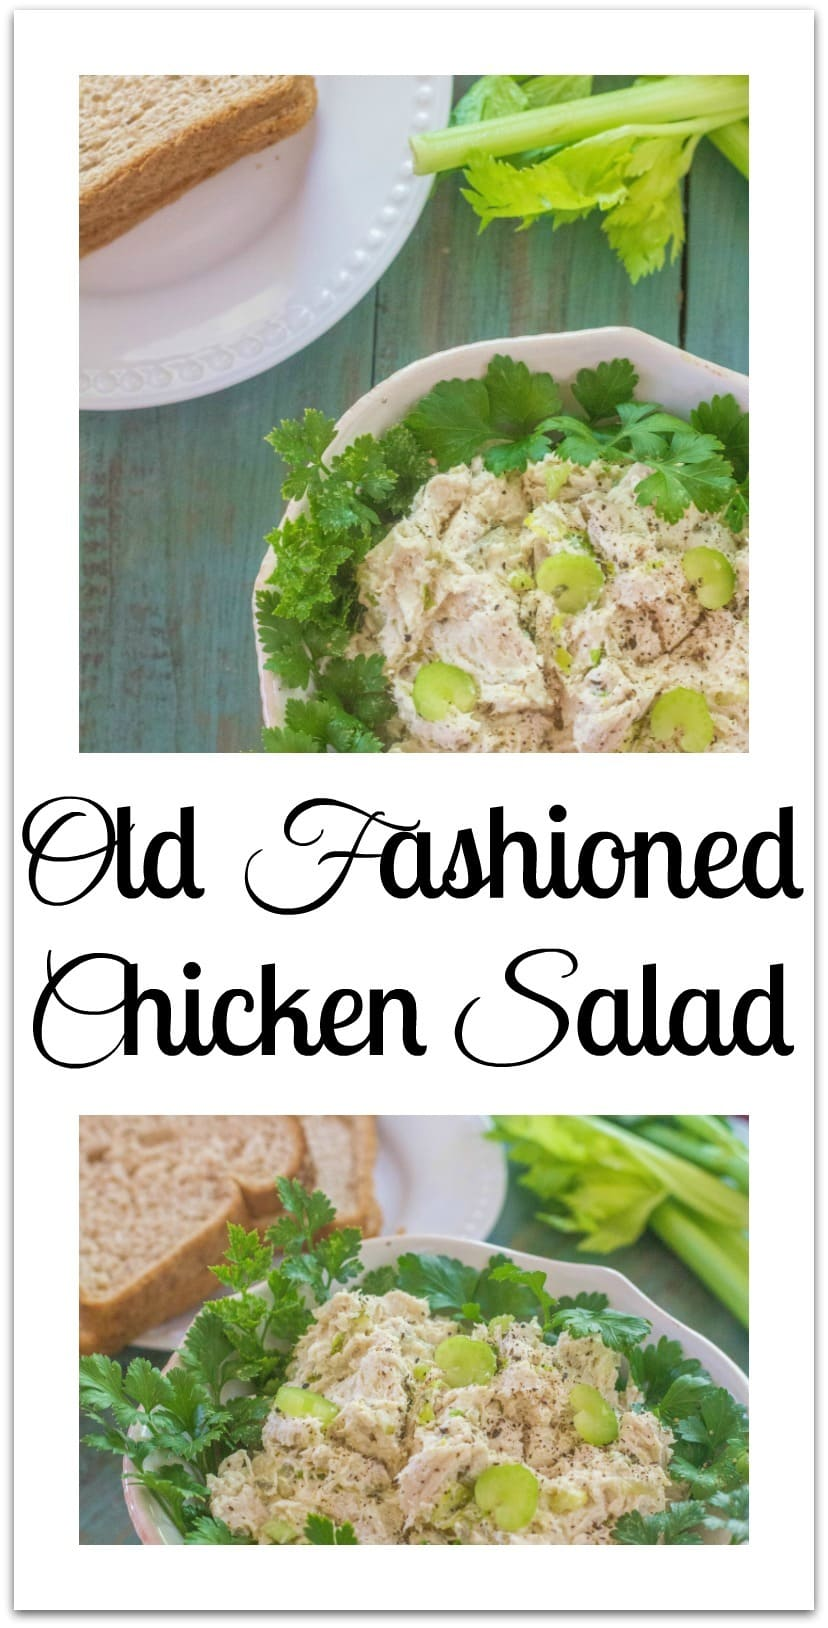 There's lots of good chicken salad recipes out there. My favorite is Old Fashioned Chicken Salad made the way my Granny did.